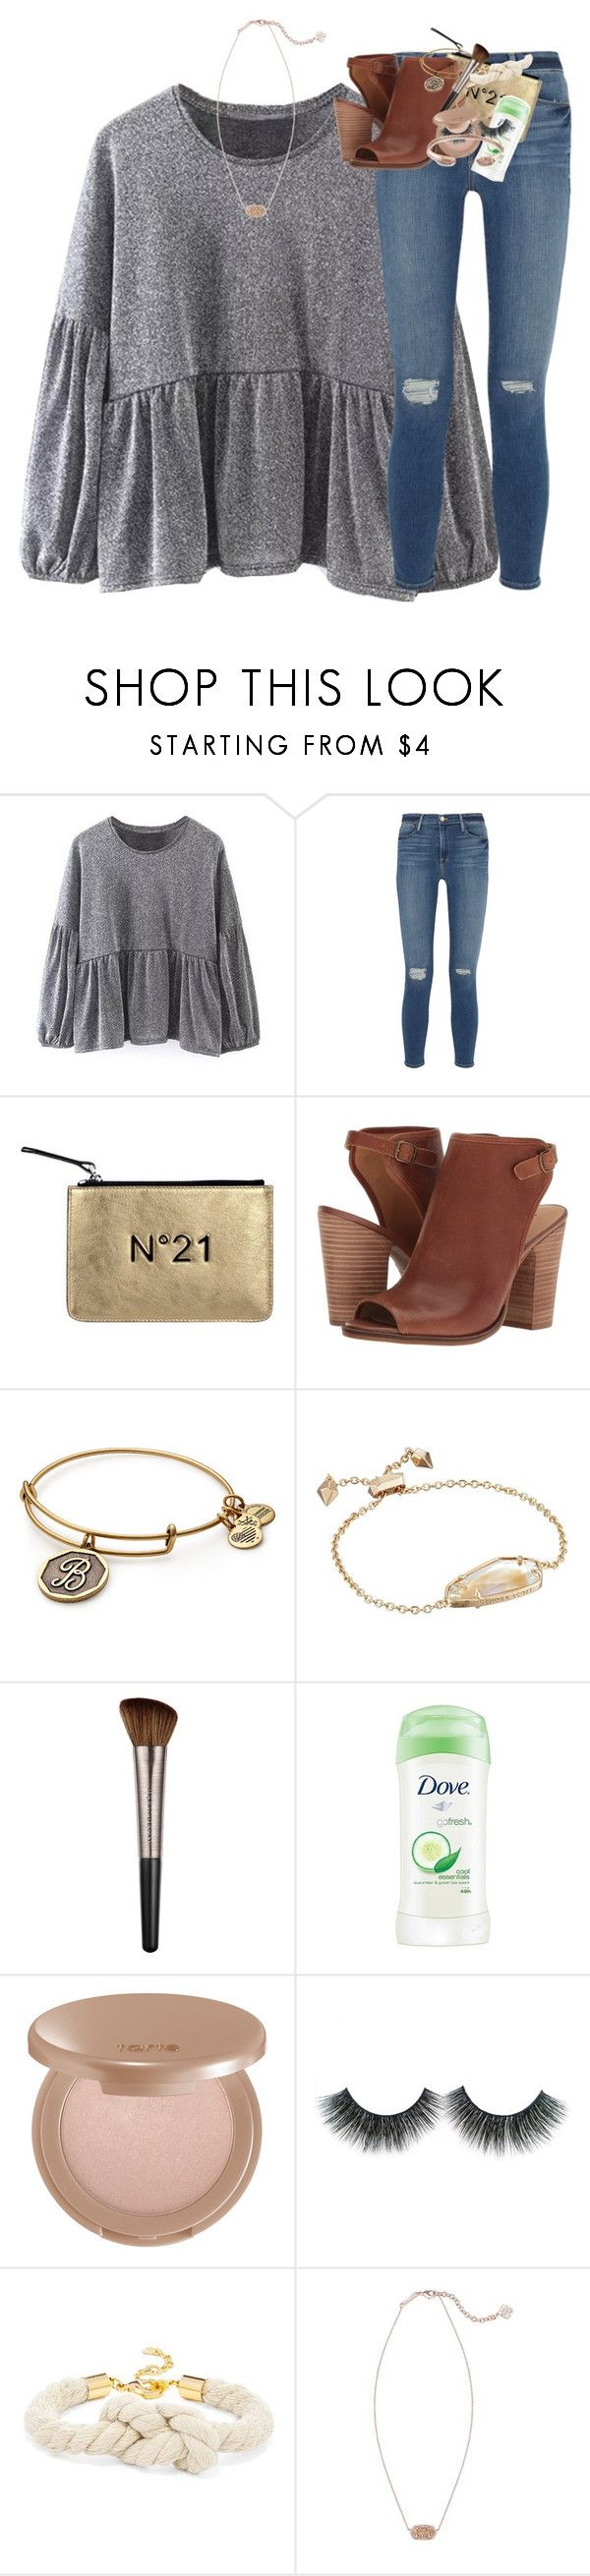 """""""working on an anne frank report!!"""" by classynsouthern ❤ liked on Polyvore featuring Frame, N°21, Lucky Brand, Alex and Ani, Kendra Scott, Urban Decay, Dove, tarte and BaubleBar"""